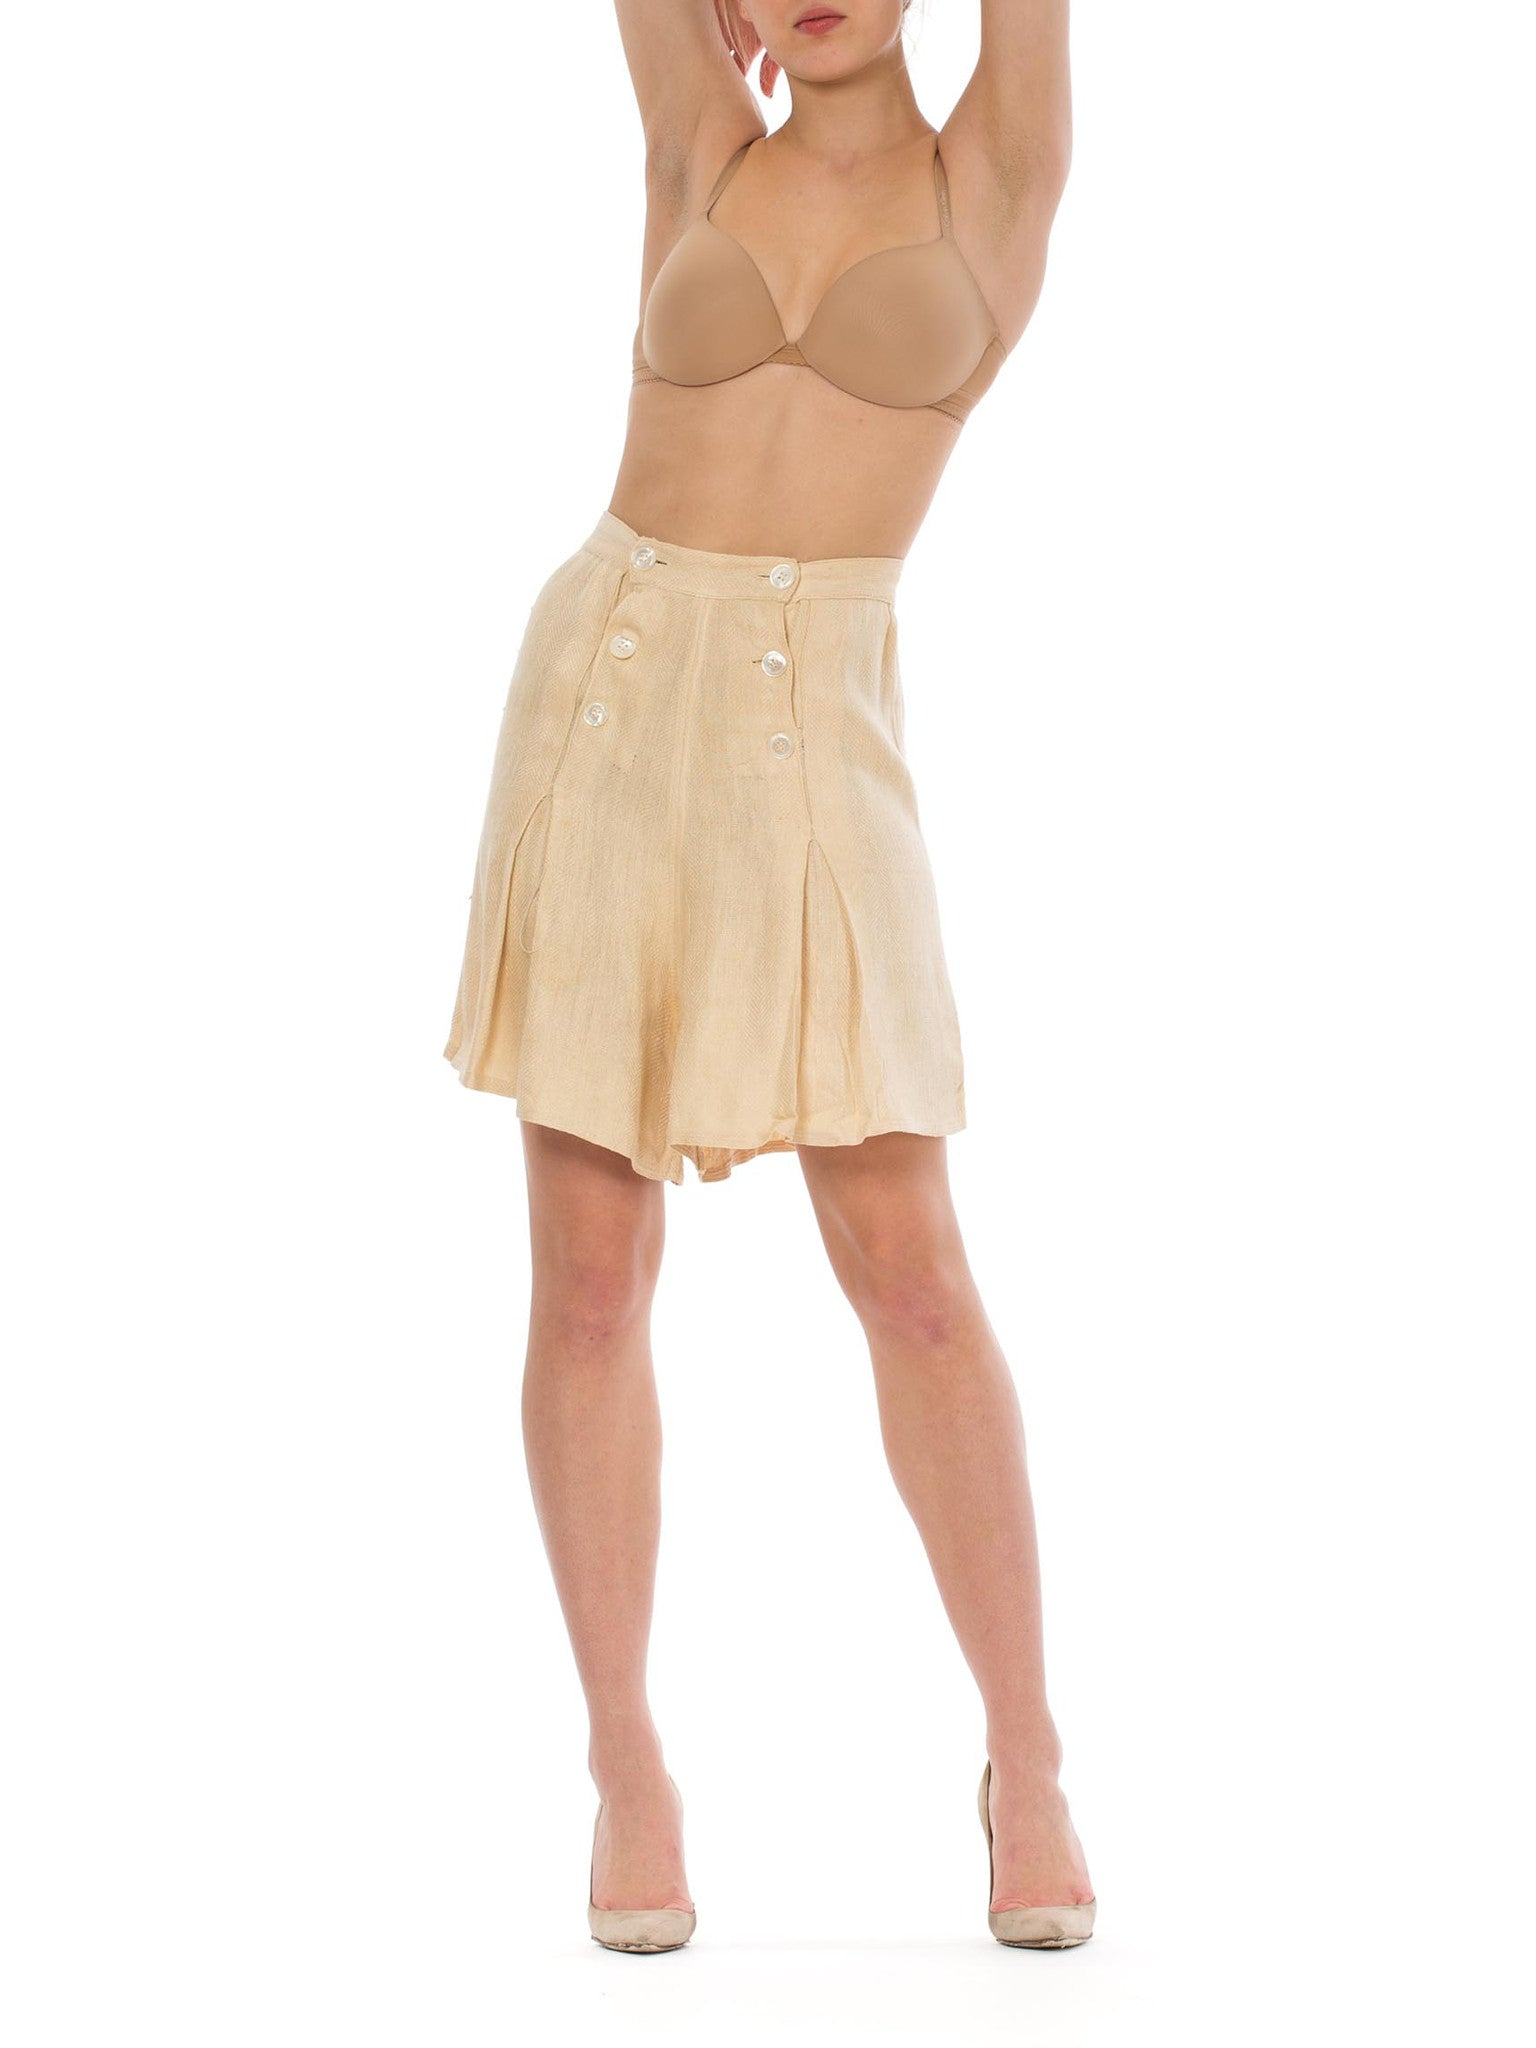 1940S Beige Silk High Waisted Culotte Shorts With Sailor Buttons